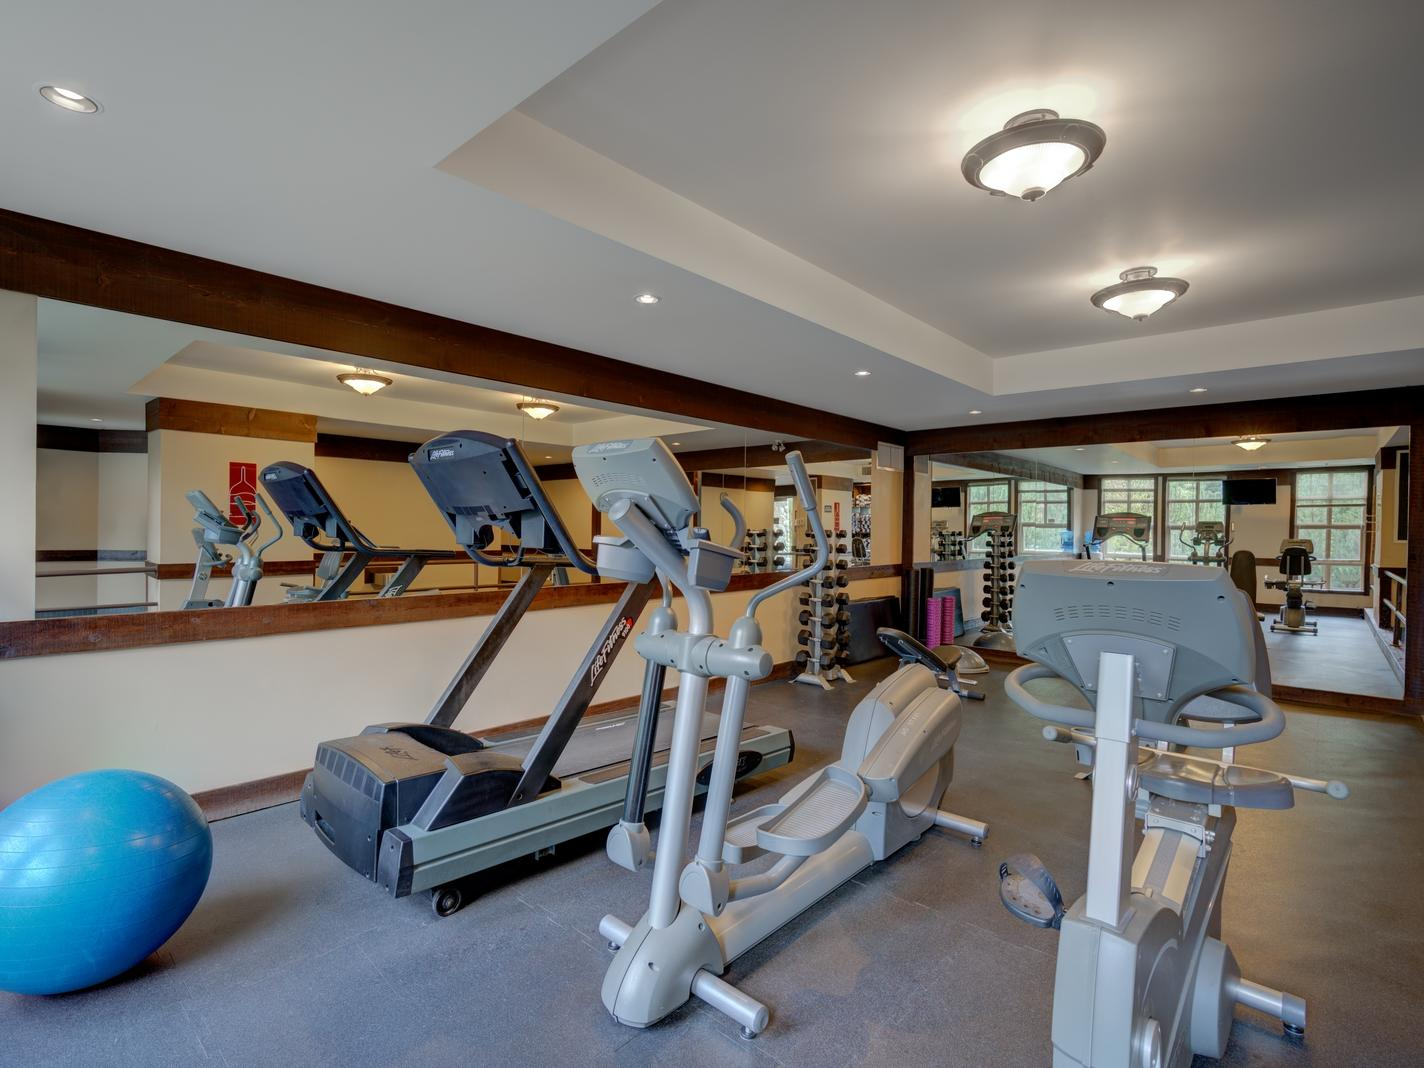 gym with treadmill, elliptical and cycle